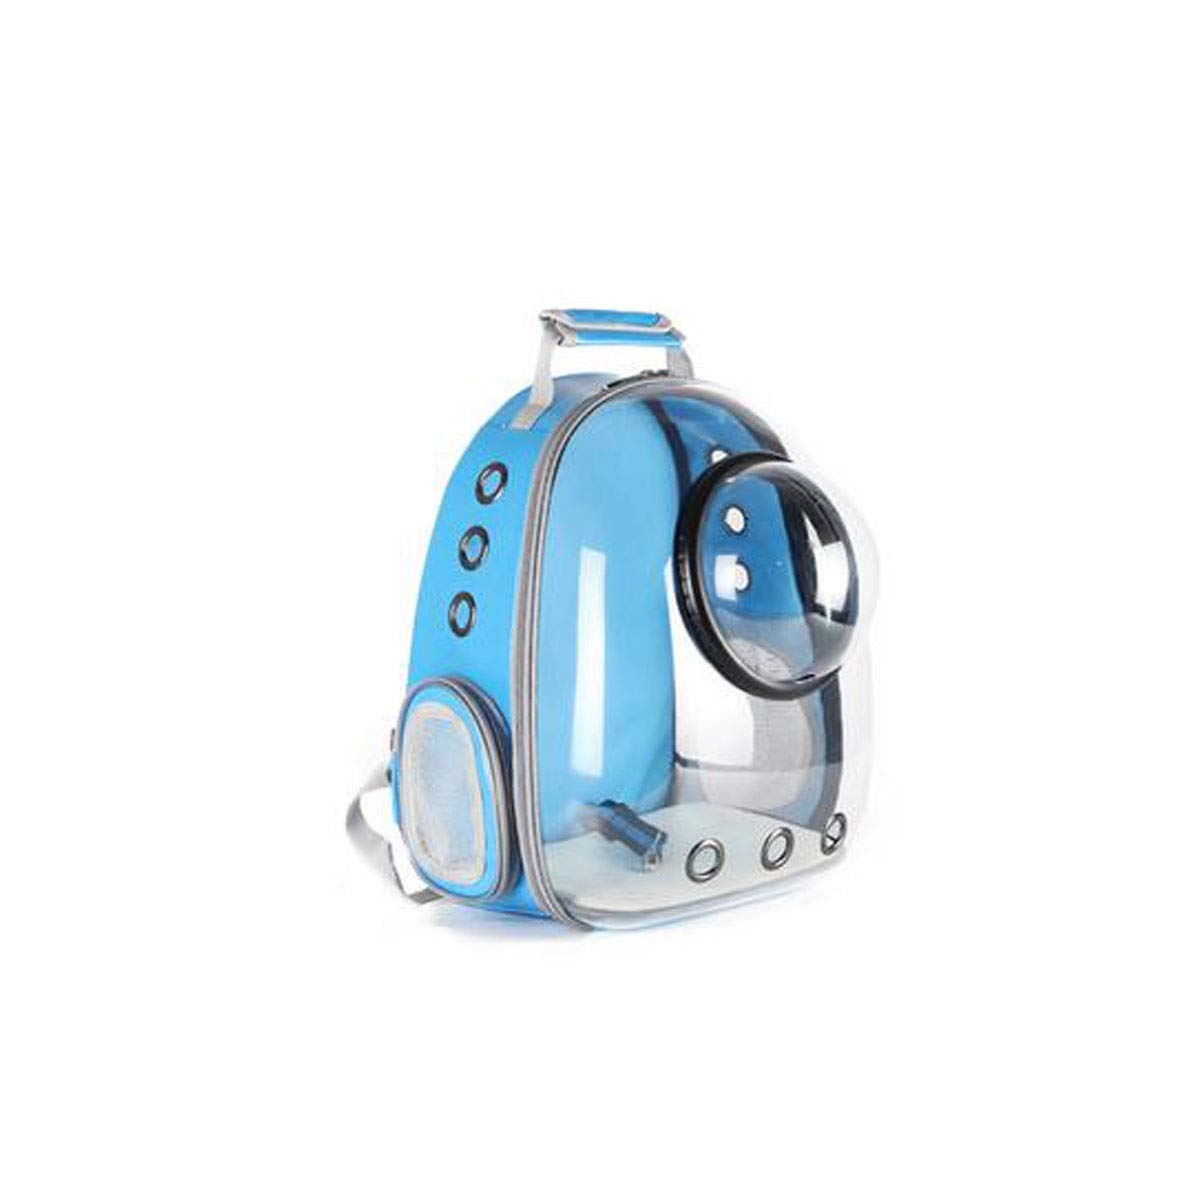 bluee Chenjinxiang01 Large-capacity pet backpack, space capsule bubble transparent backpack, suitable for medium-sized pets for travel, hiking(bluee, Yellow) (color   bluee)